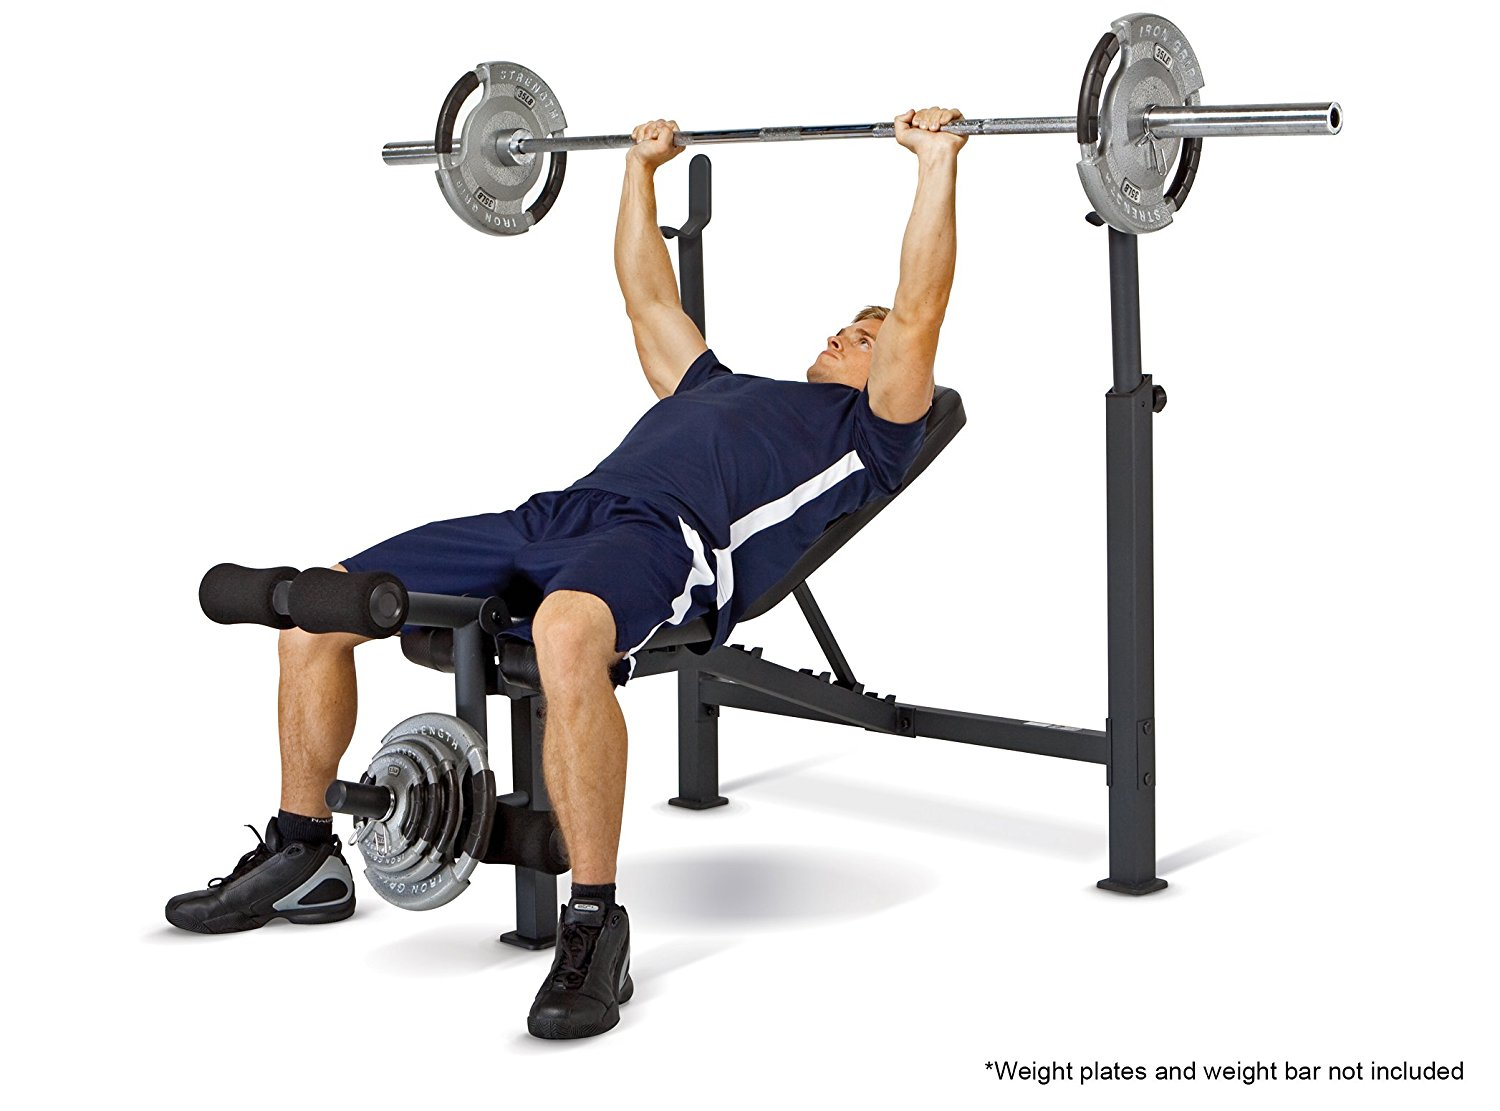 Competitor CB 729 Olympic Weight Bench Review